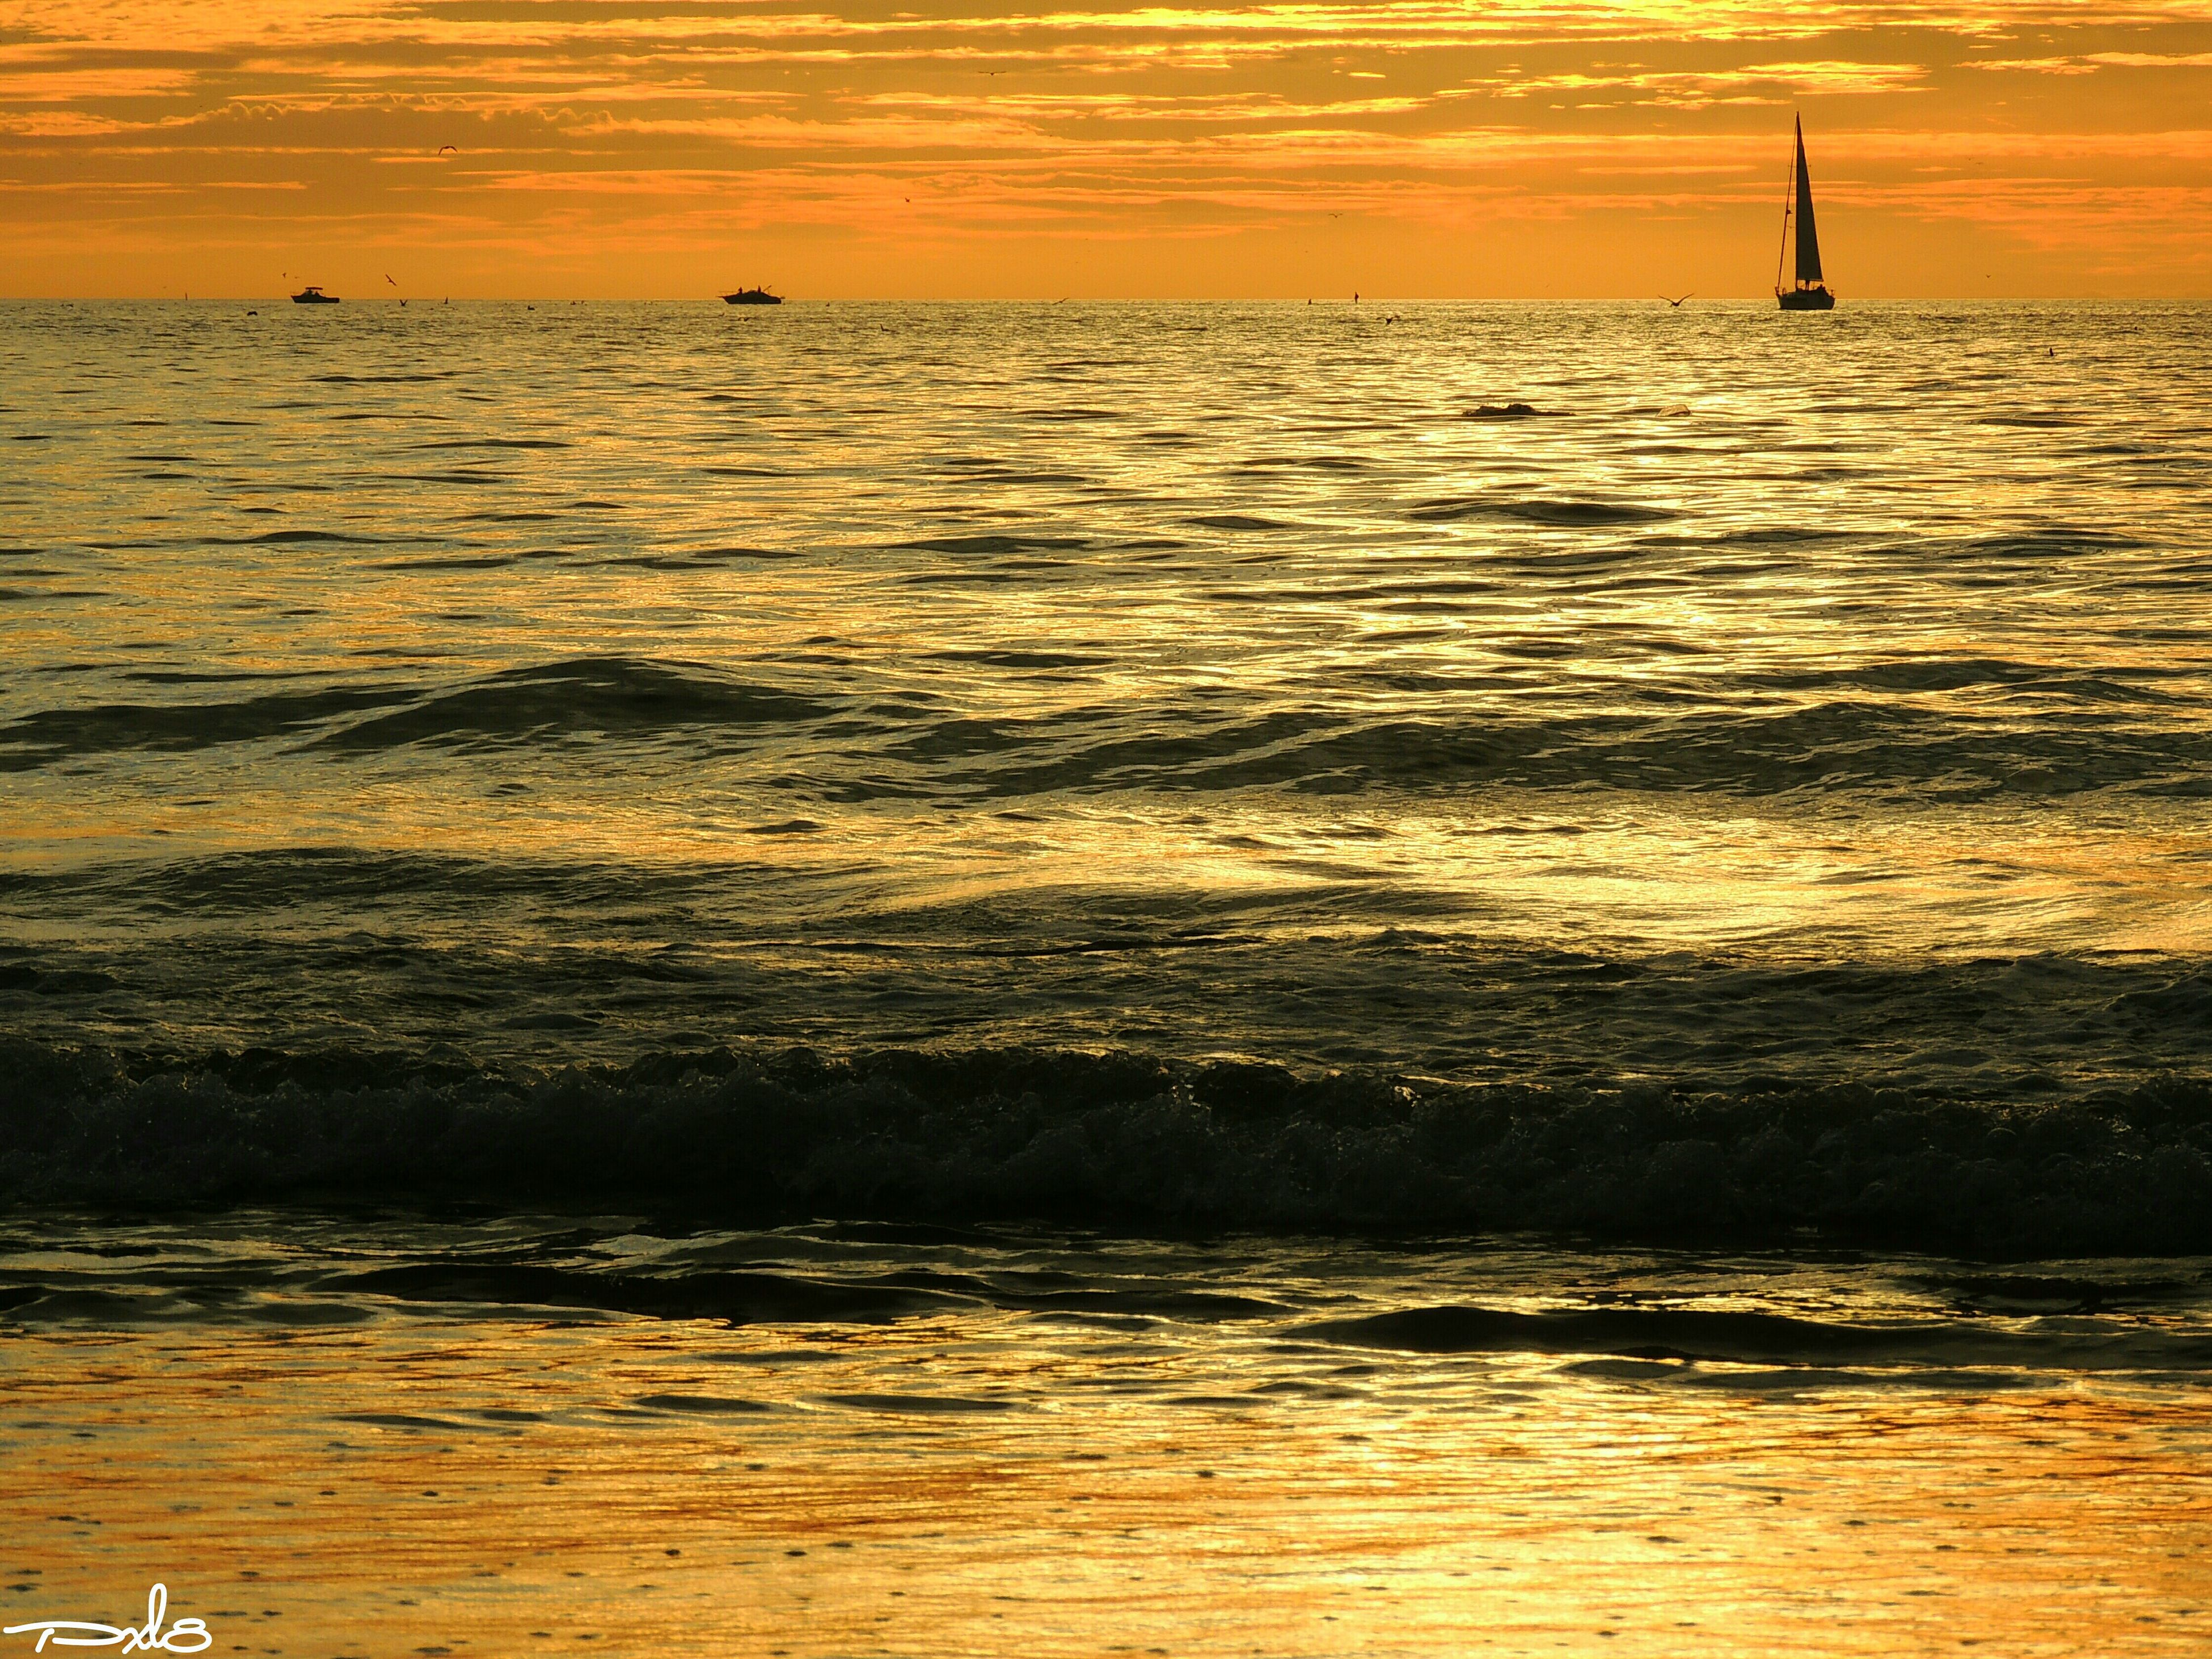 sunset, sea, water, horizon over water, scenics, orange color, tranquil scene, beauty in nature, tranquility, waterfront, sky, idyllic, nature, silhouette, rippled, sun, seascape, beach, reflection, wave